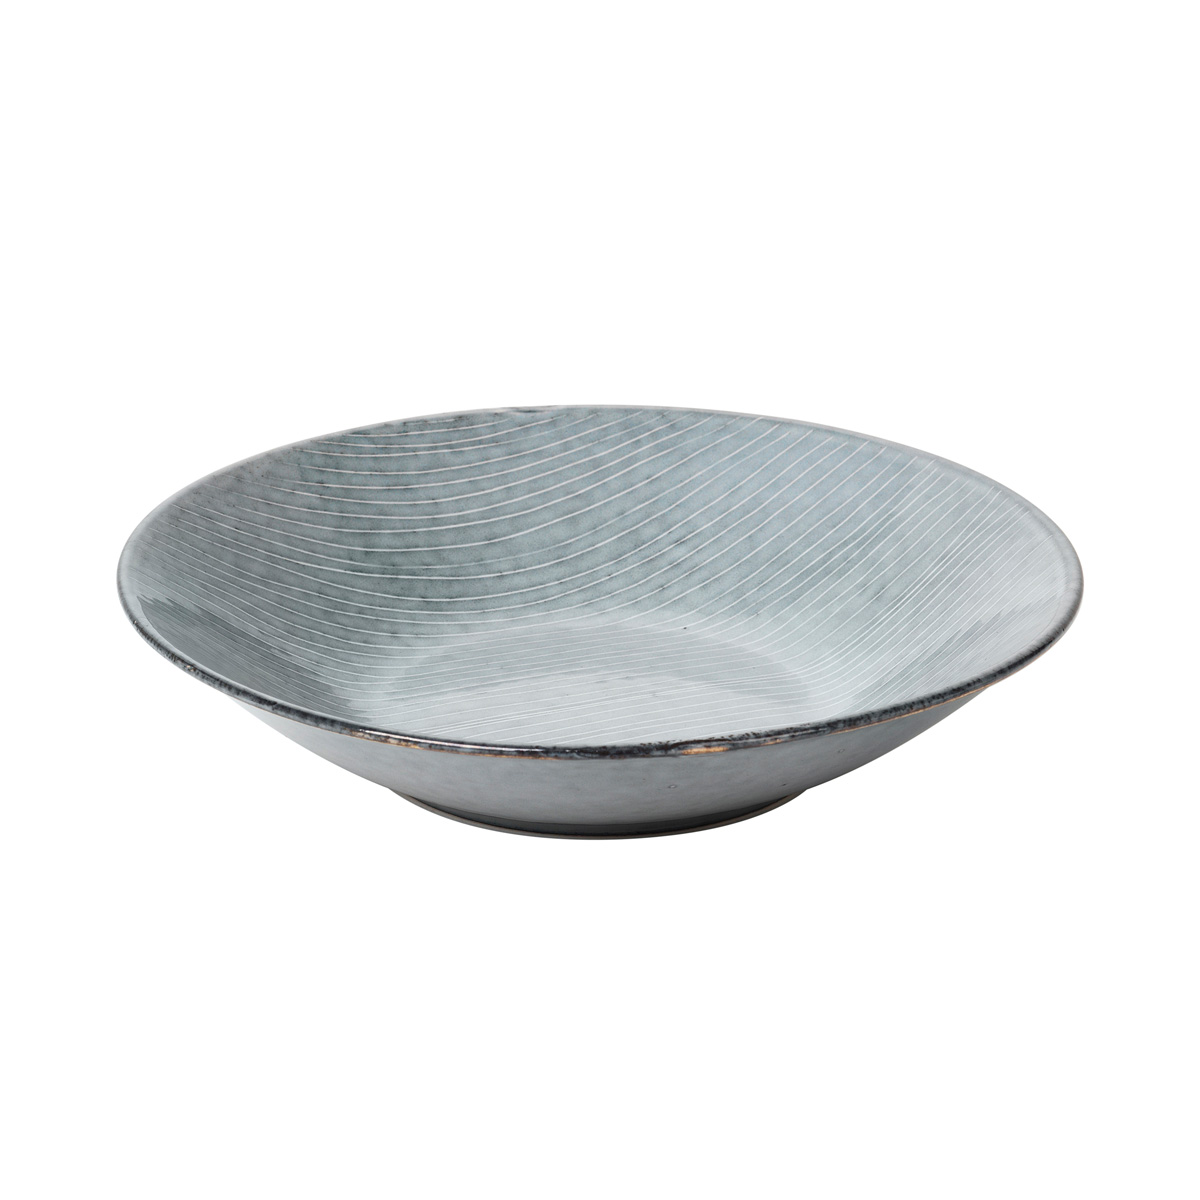 Broste Nordic Sea 22.5cm wide bowl 14533217